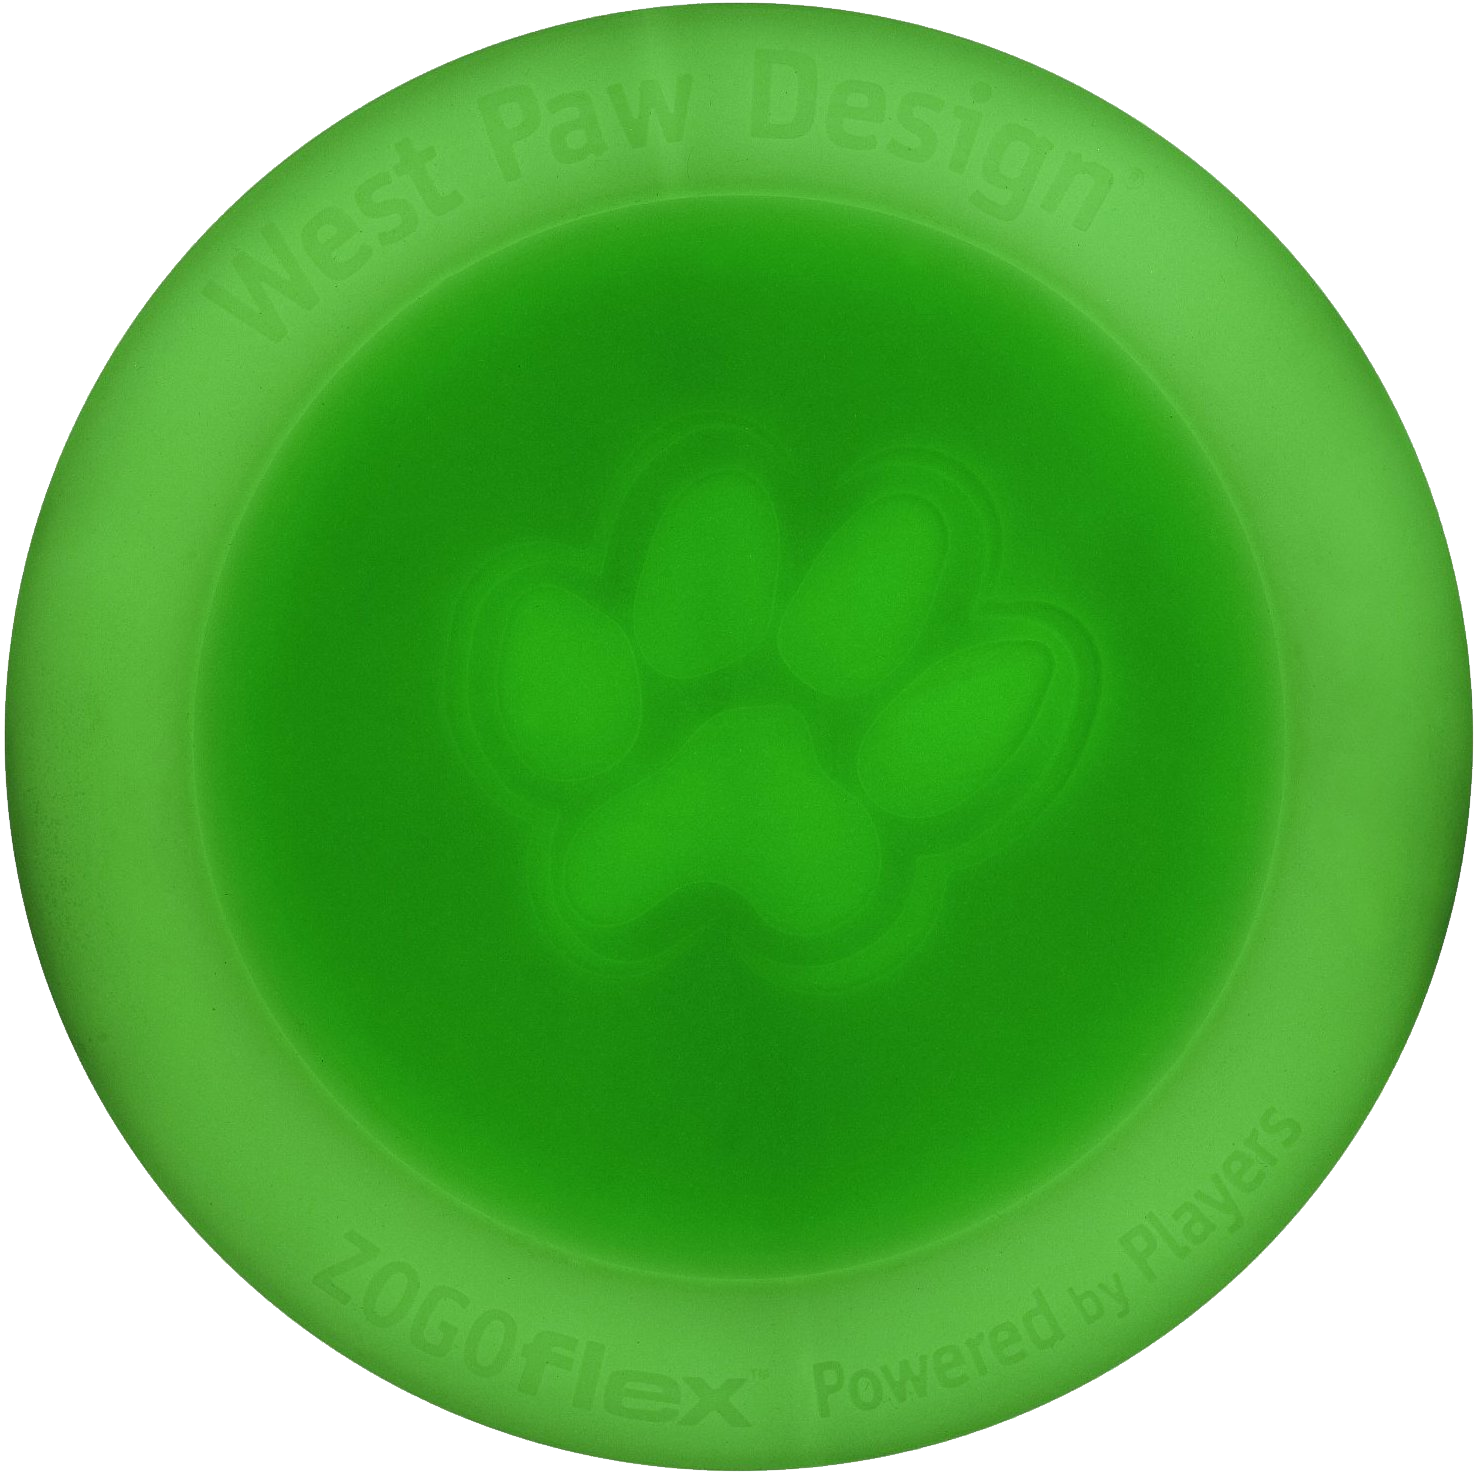 Frisbee Png Image Dog Toys Disc Dogs Tough Dog Toys